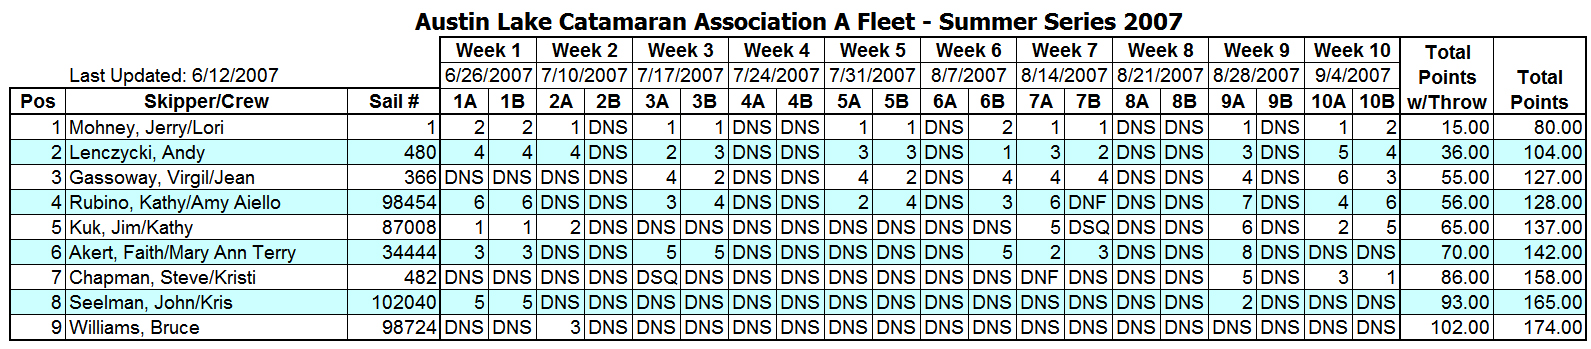 2007 Summer Portsmouth A Fleet Results